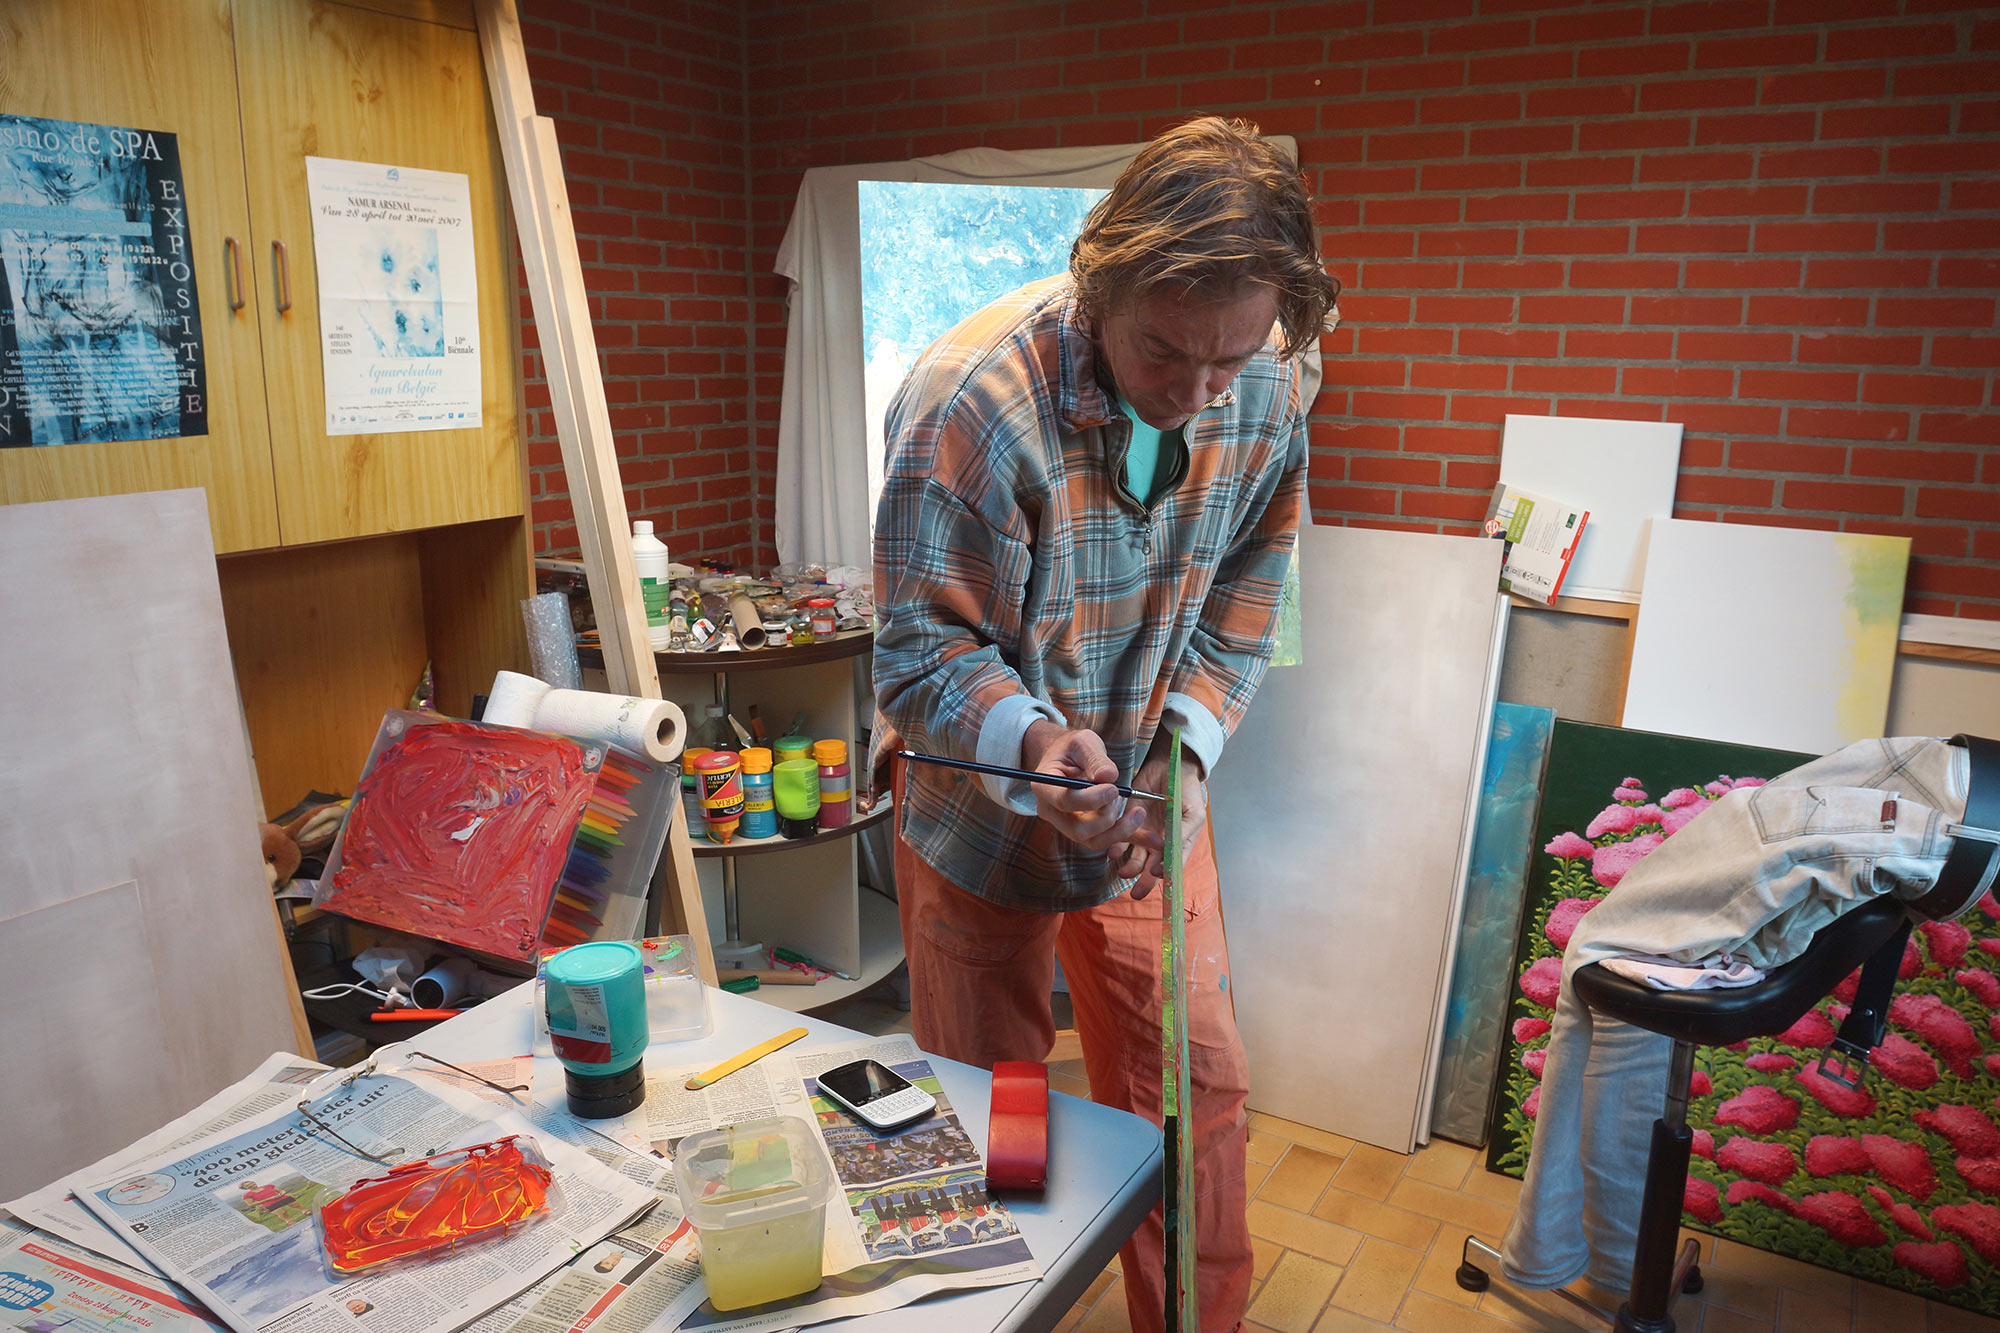 Erik Tanghe at work in his little studio in Kalmthout